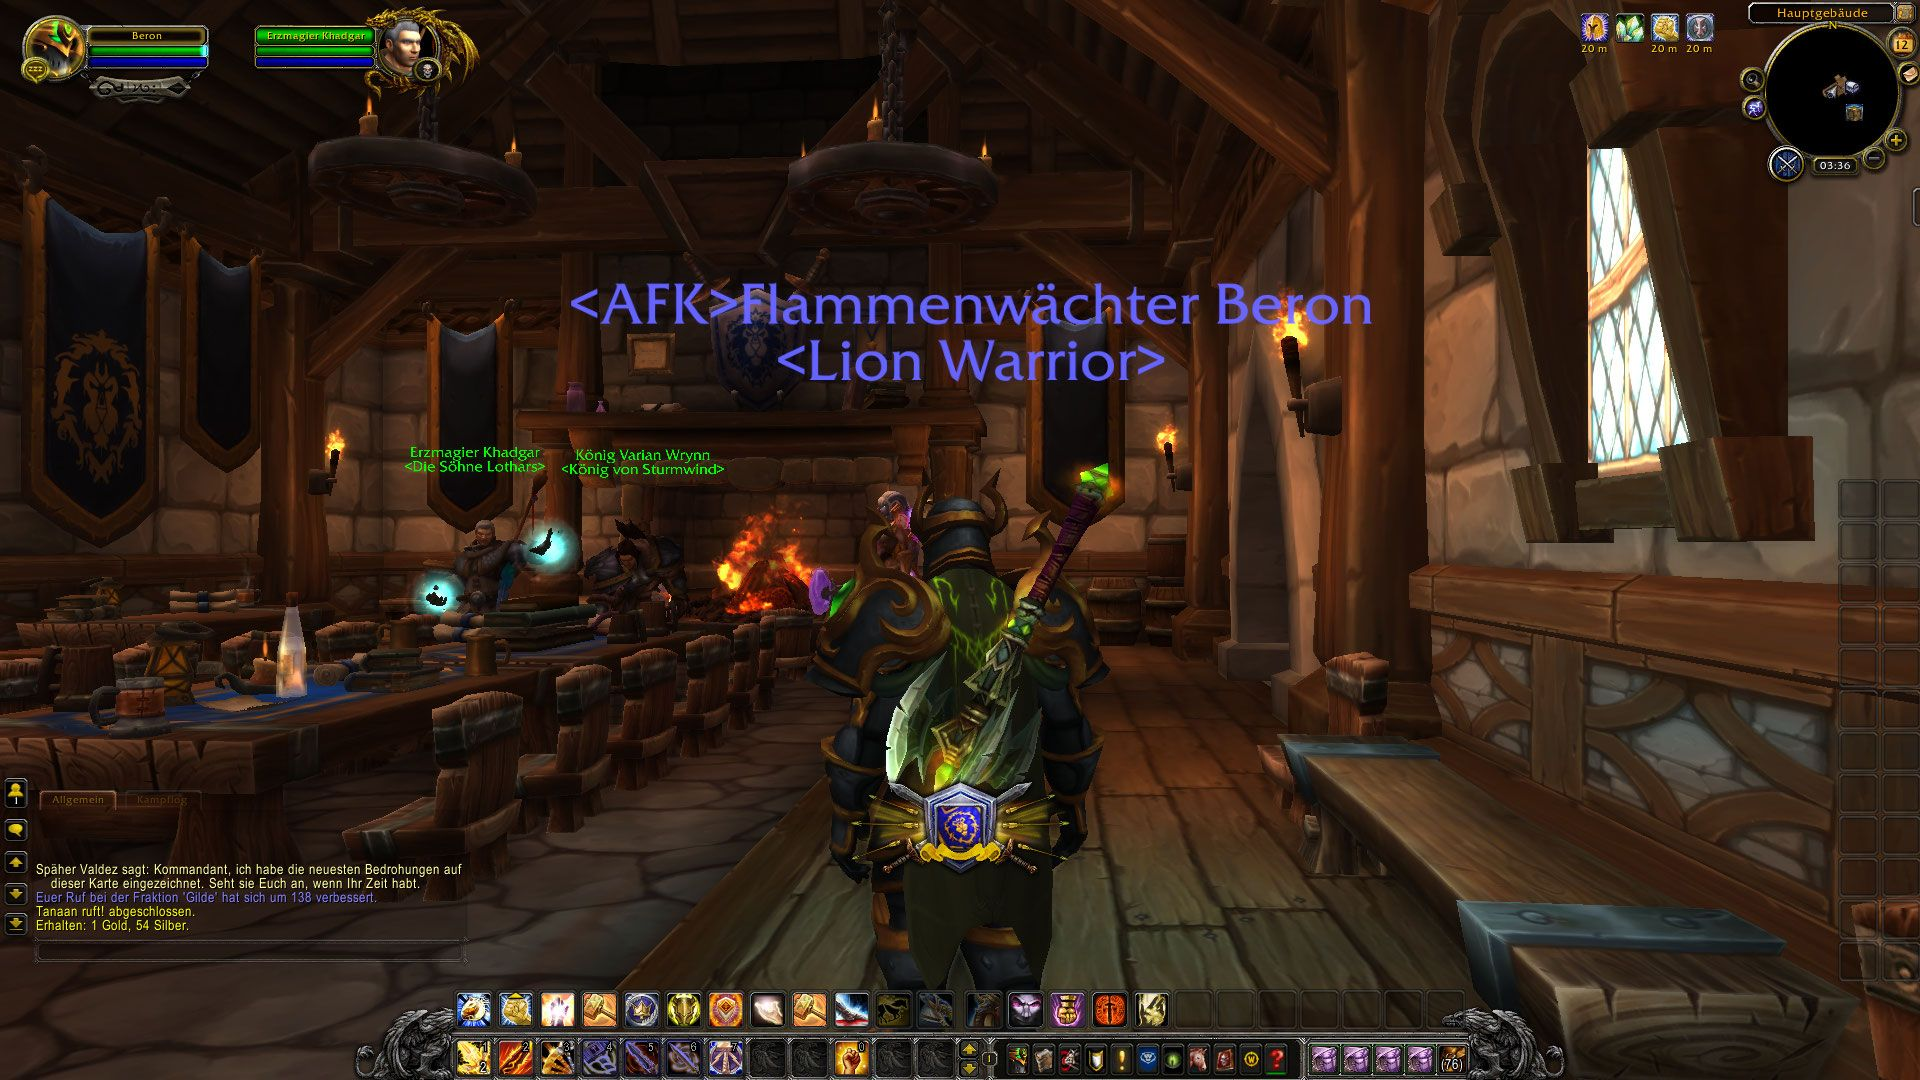 King Varian will always be in our heart... or in my garrison #worldofwarcraft #blizzard #Hearthstone #wow #Warcraft #BlizzardCS #gaming